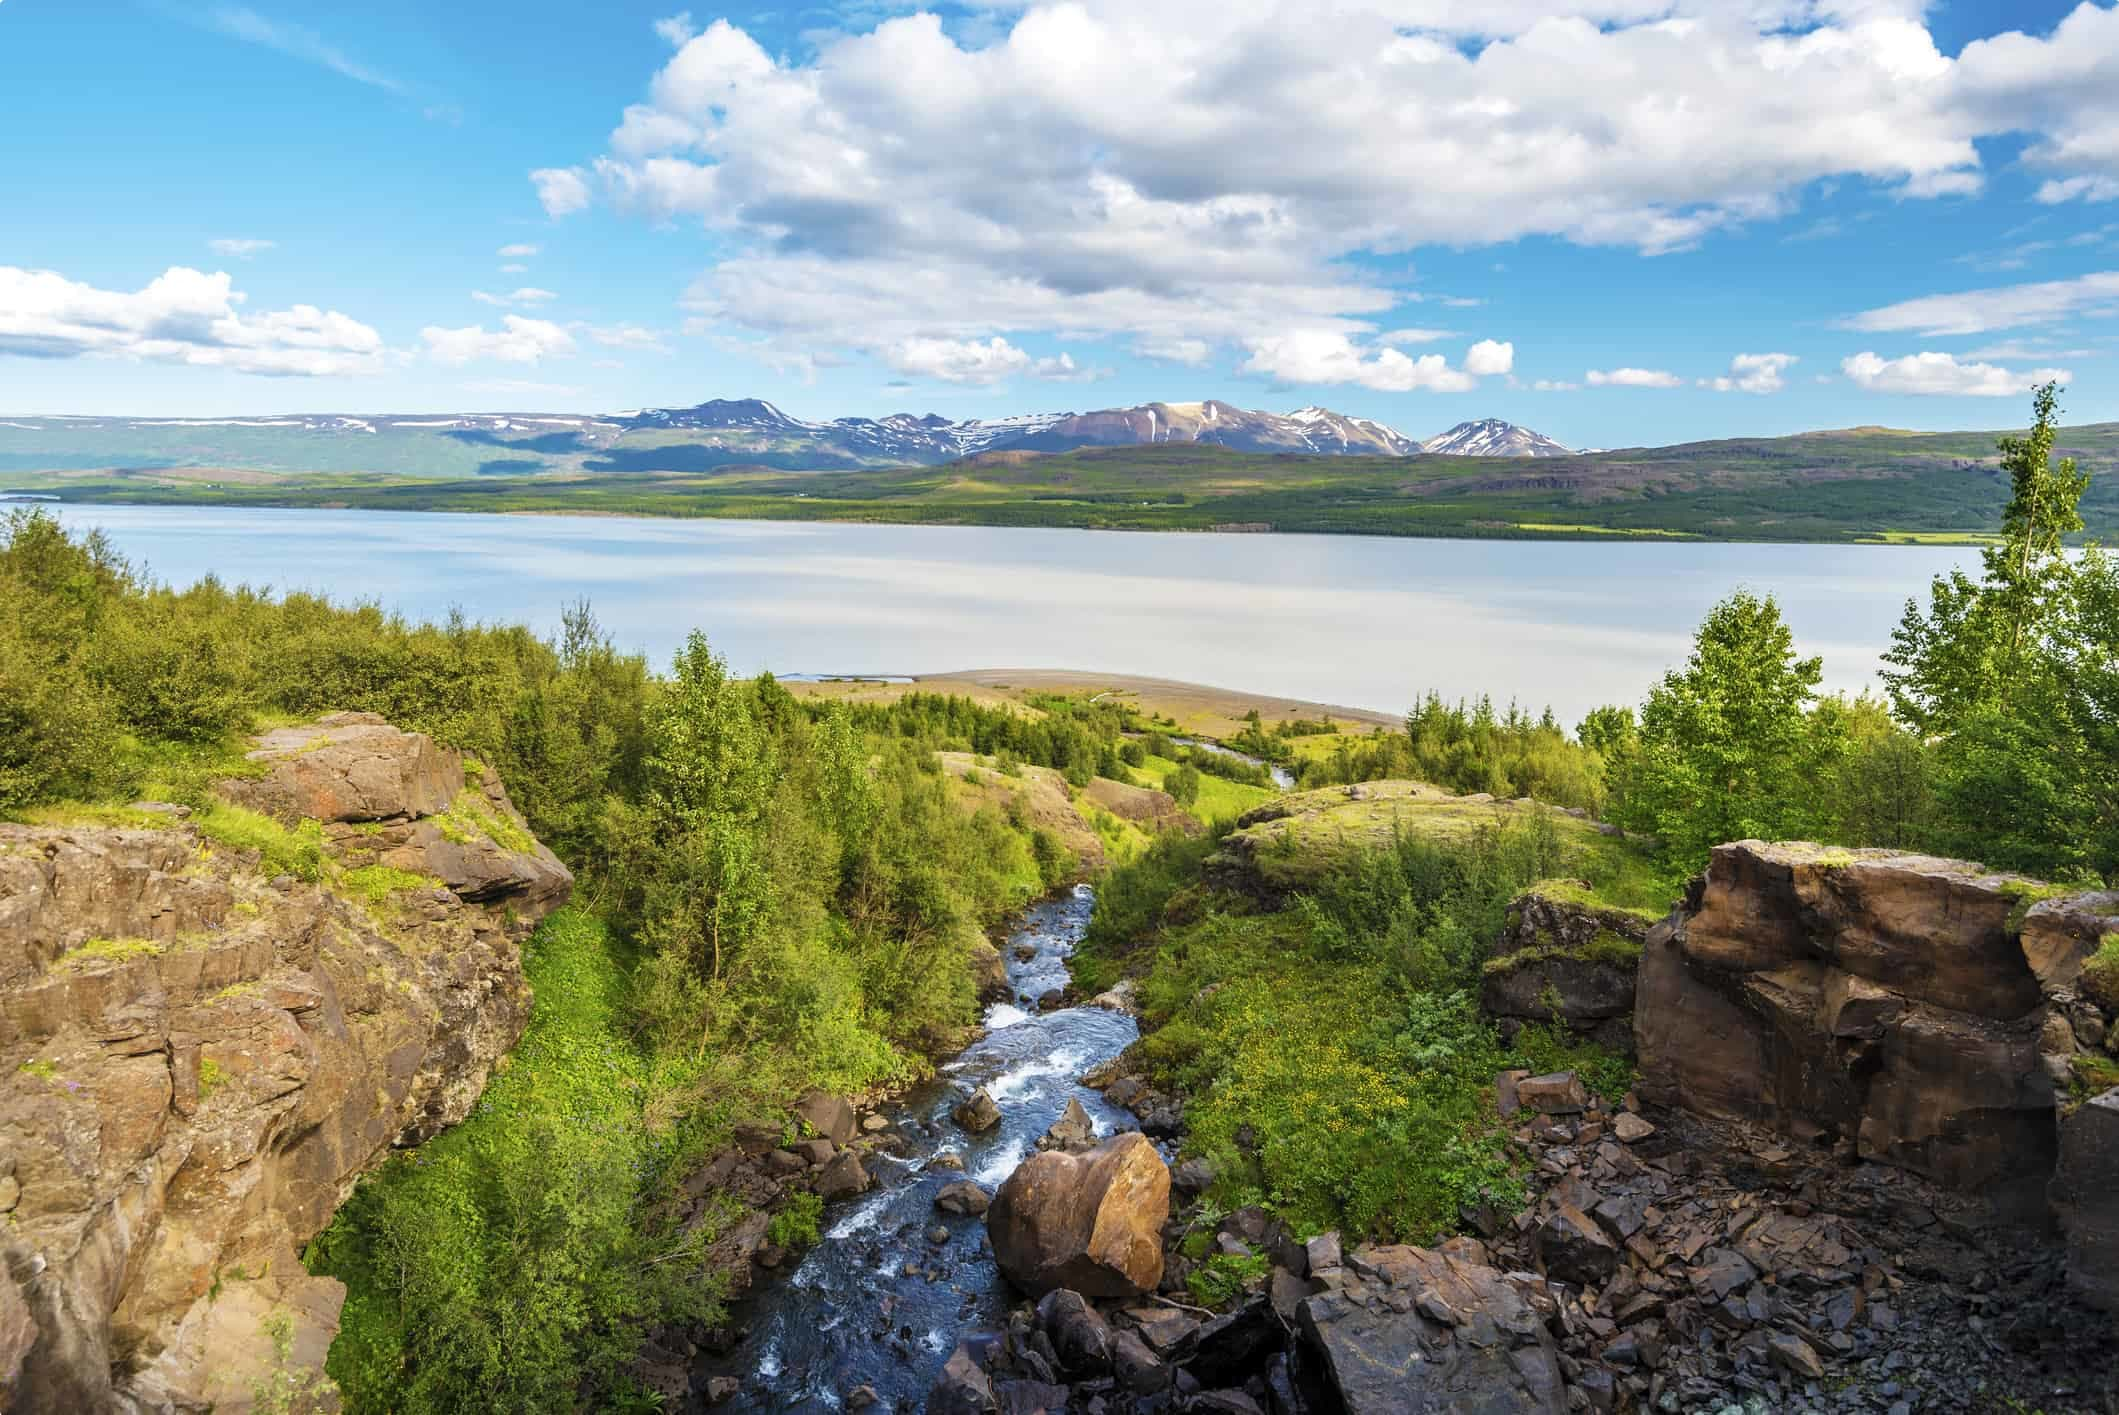 Water course falling down to Lagarfljot lake in Eastern Iceland, the mountain landscape of Fljotsdalsherad municipality is at background